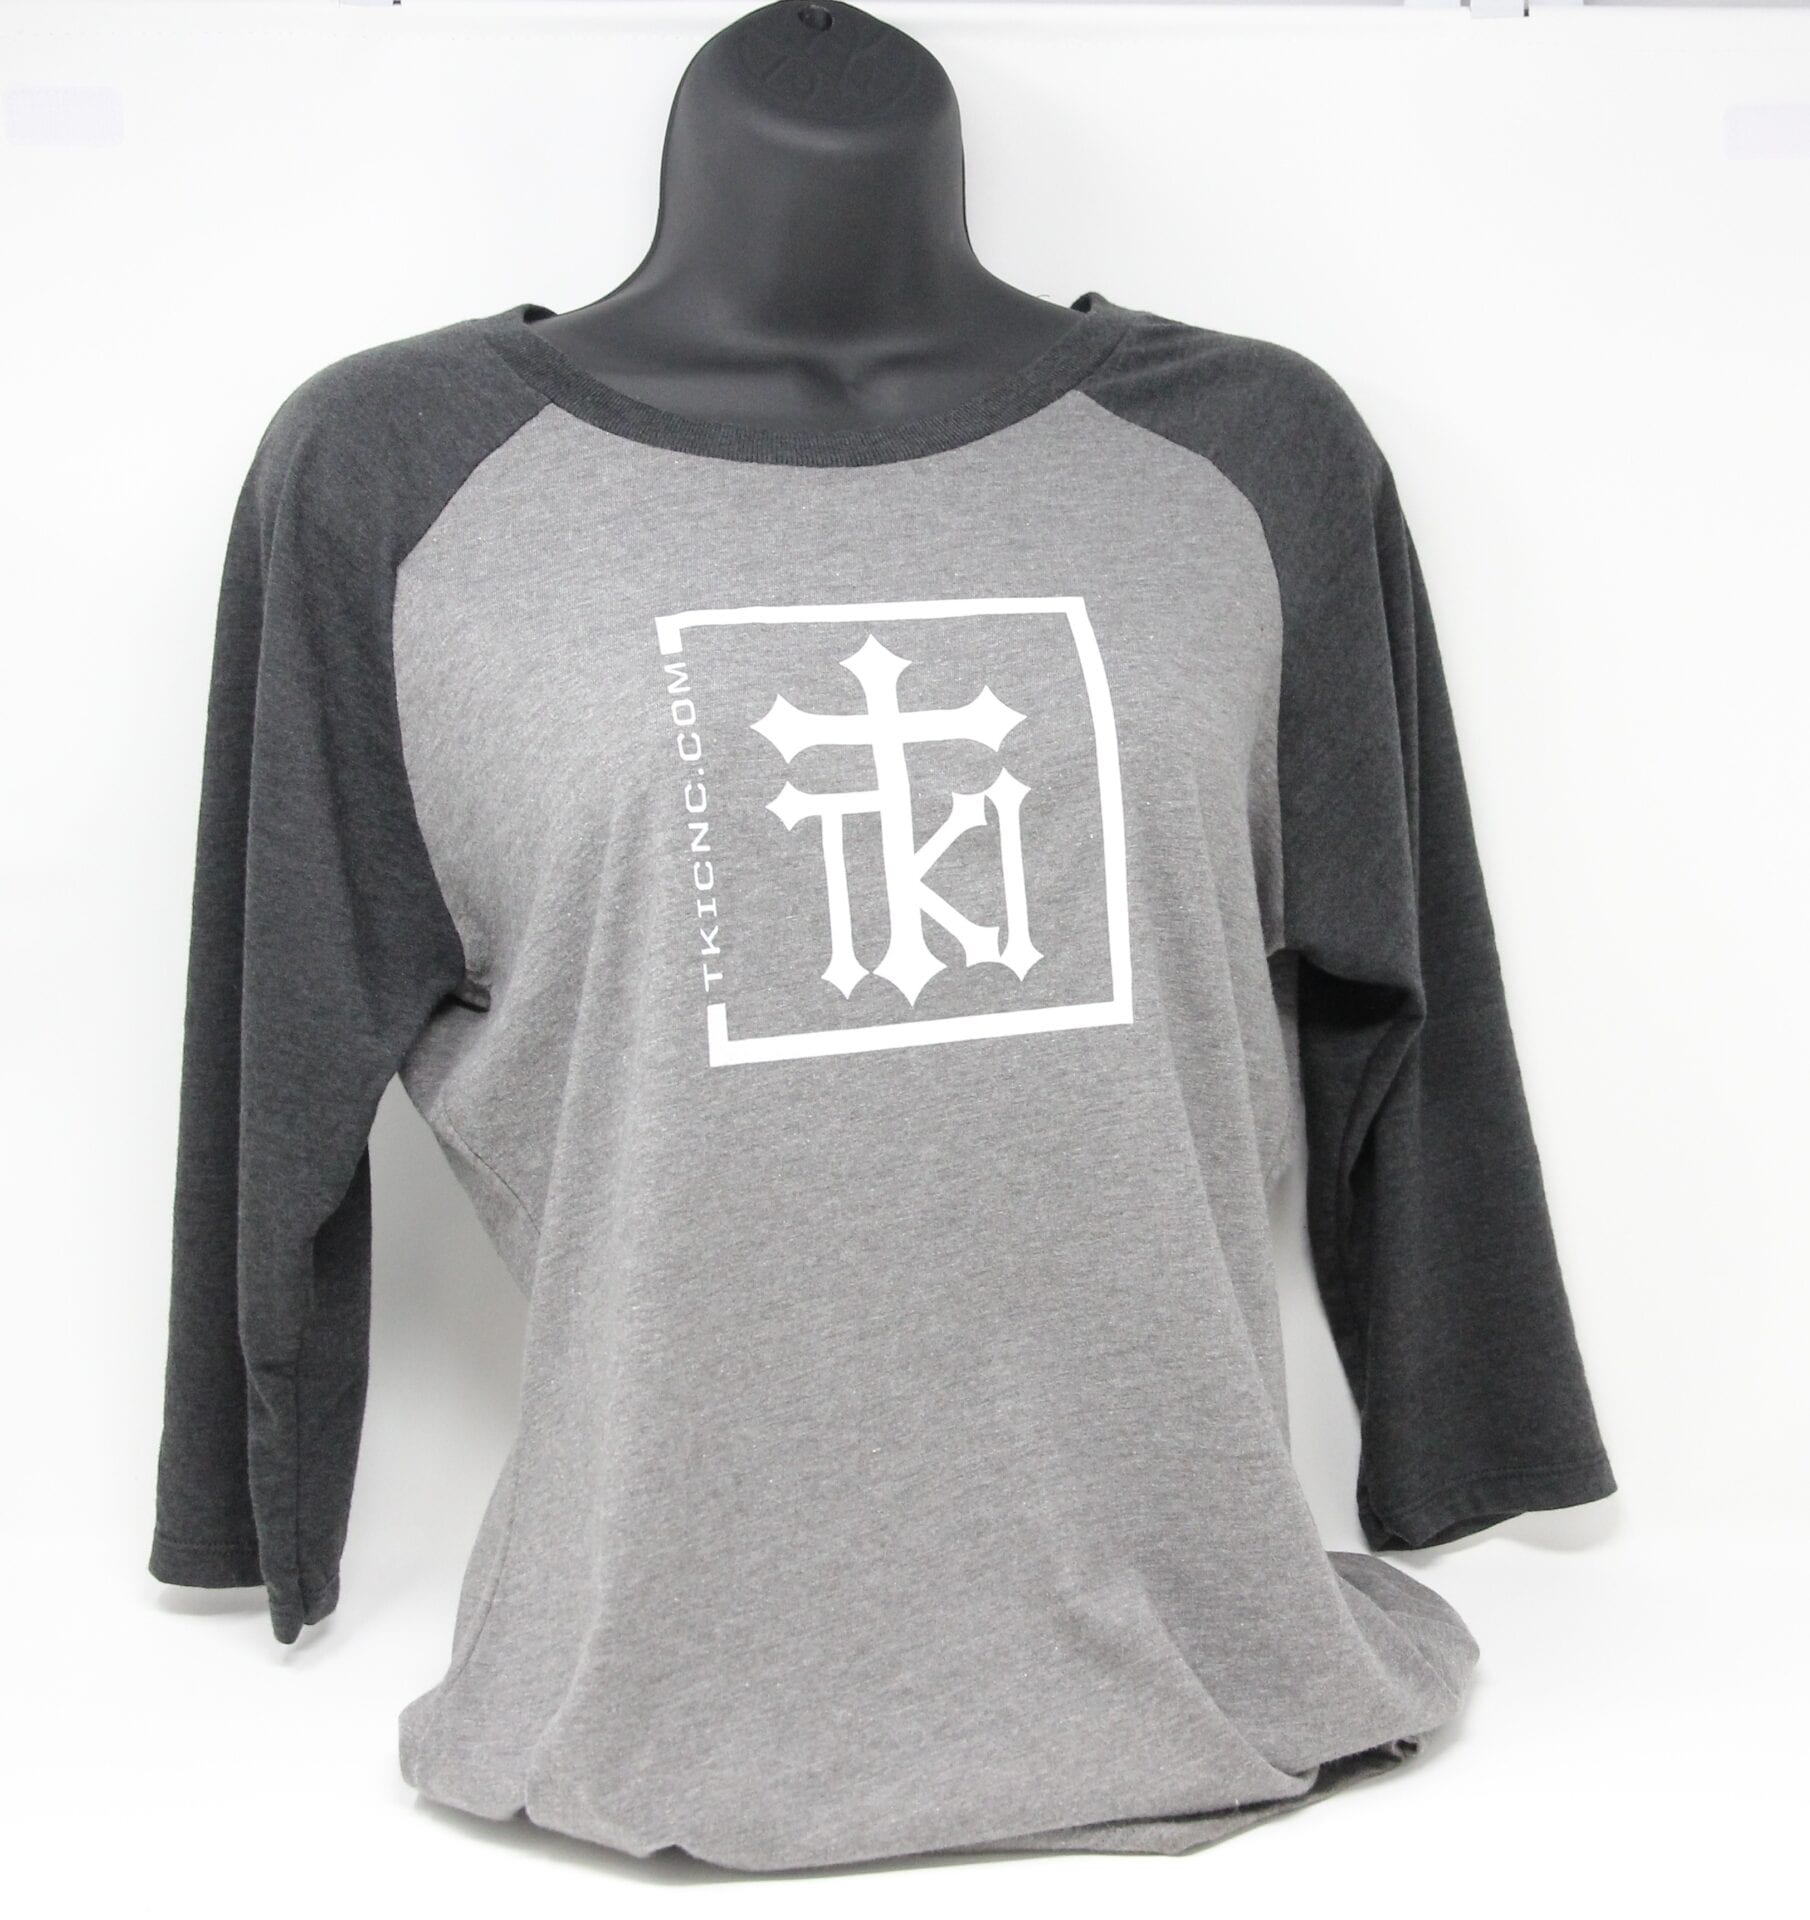 TKI Apparel